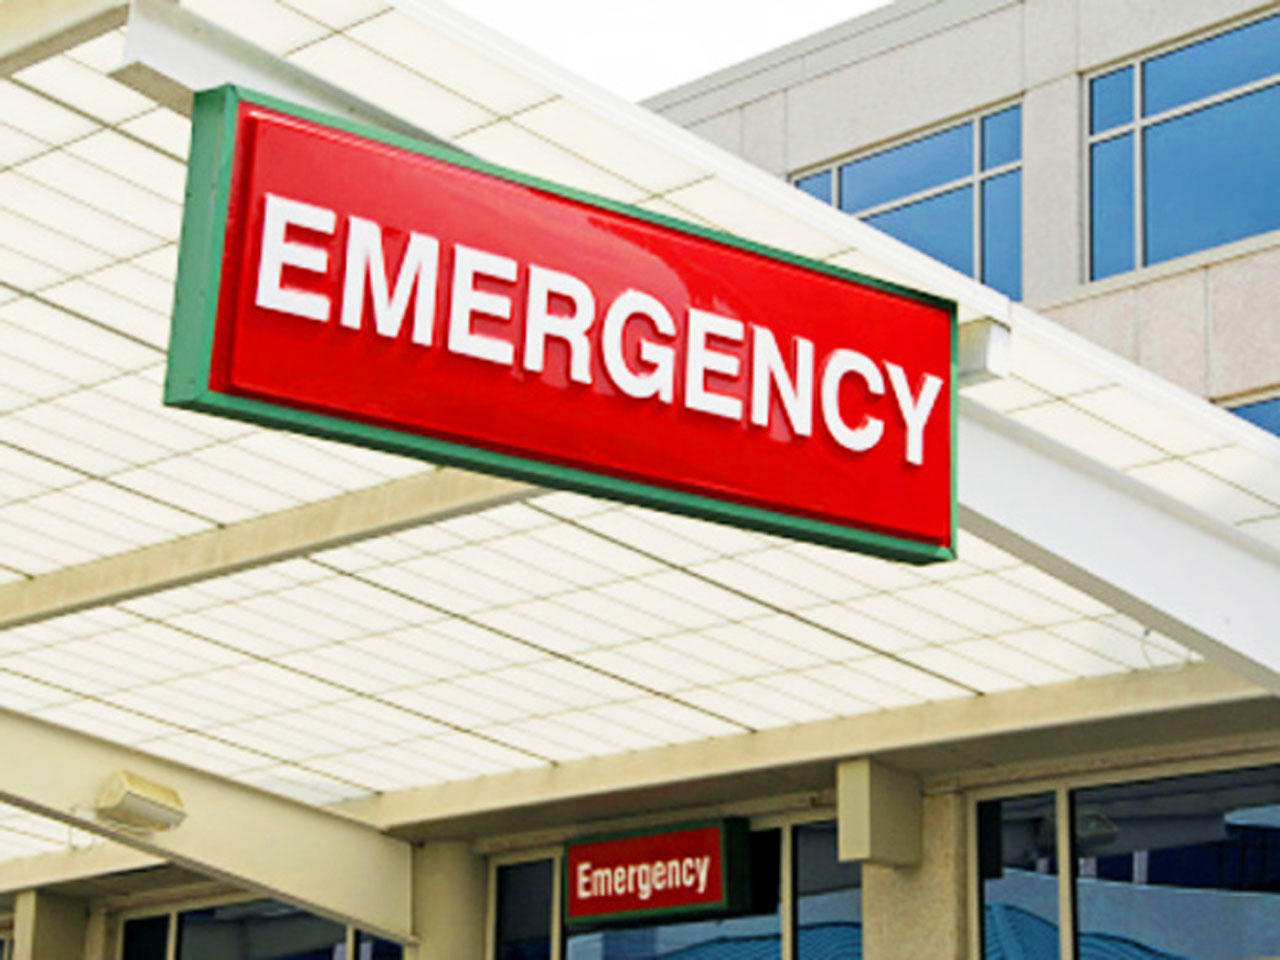 Blood Test Helps Rule Out Heart Attack In ER With 99 Percent Accuracy